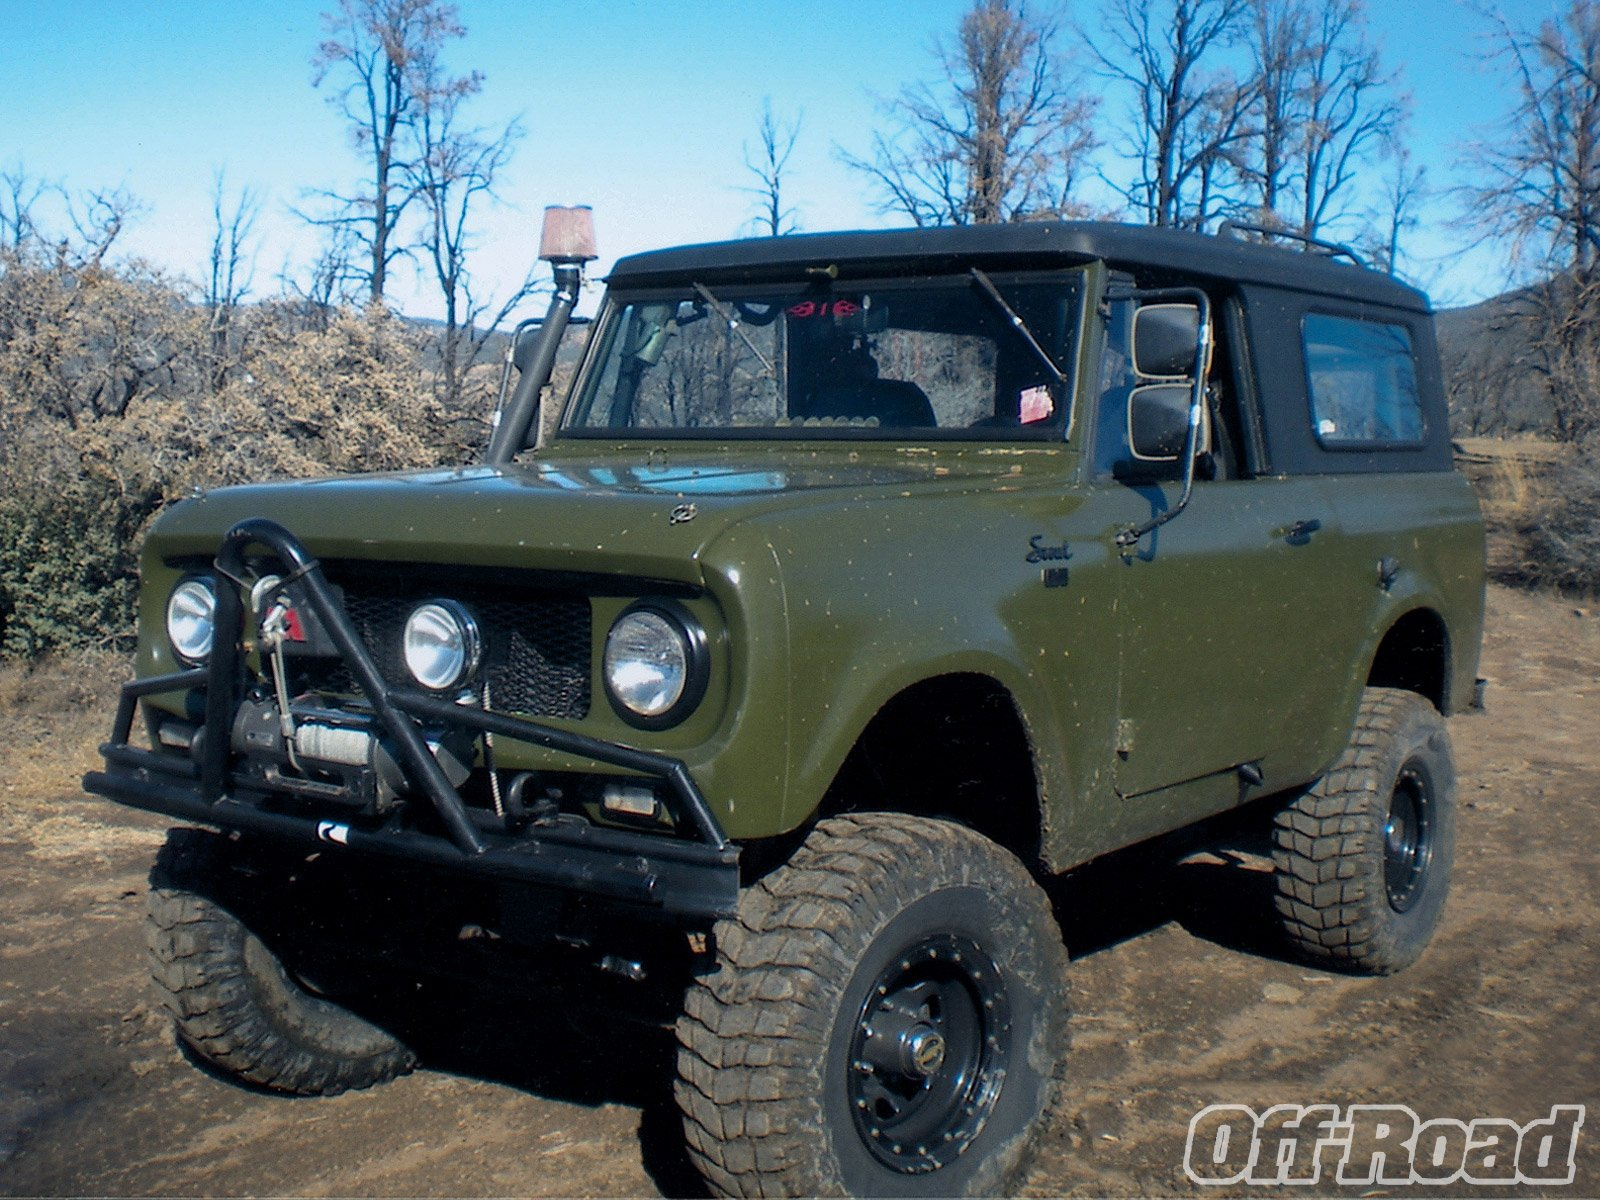 International Scout Suv 4x4 Harvester Offroad Wallpaper